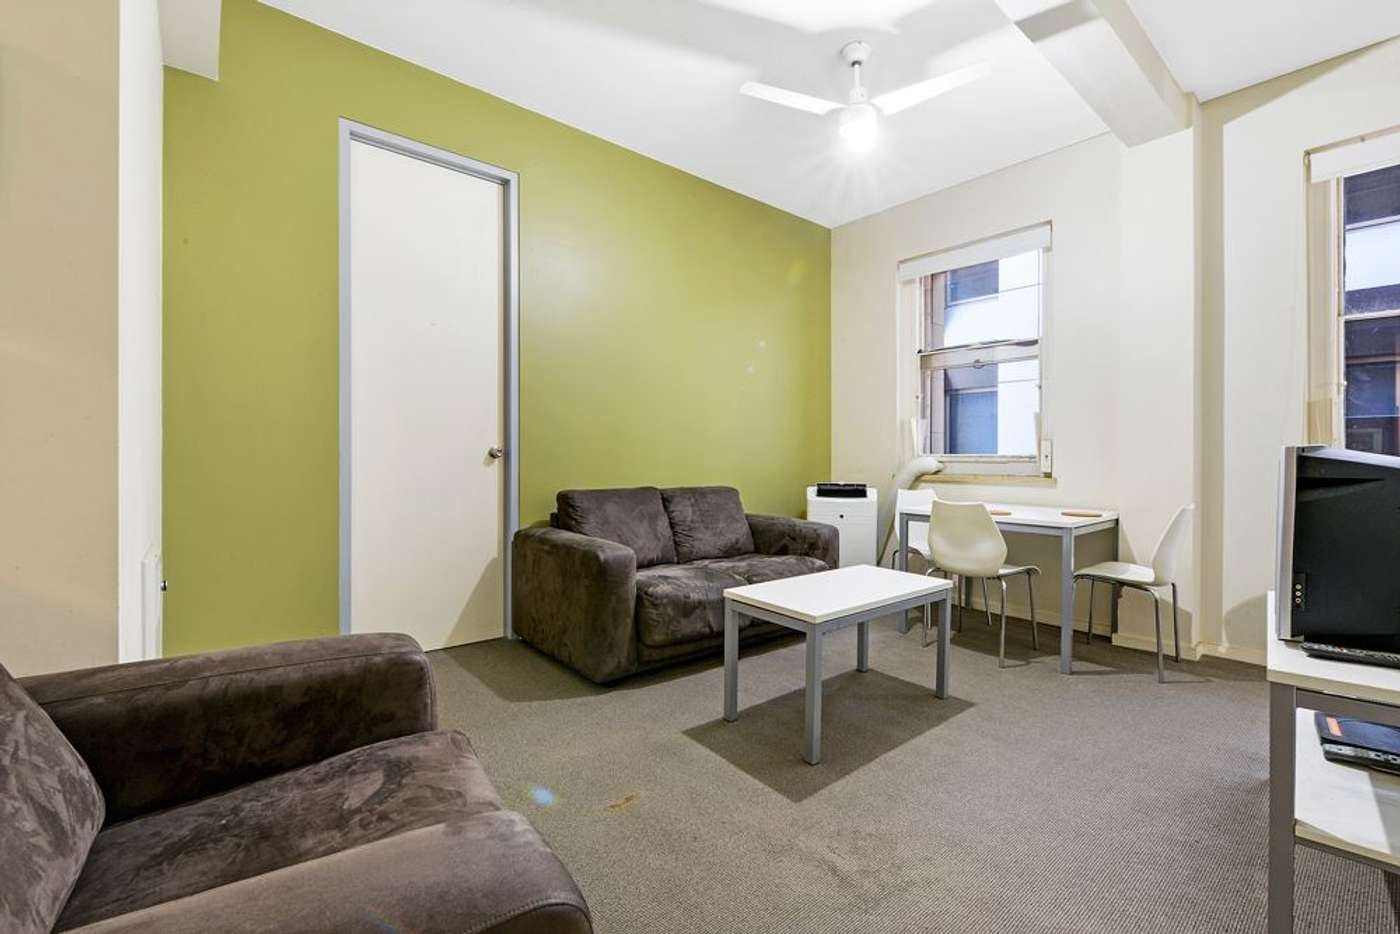 Main view of Homely apartment listing, 905/23 King William Street, Adelaide SA 5000